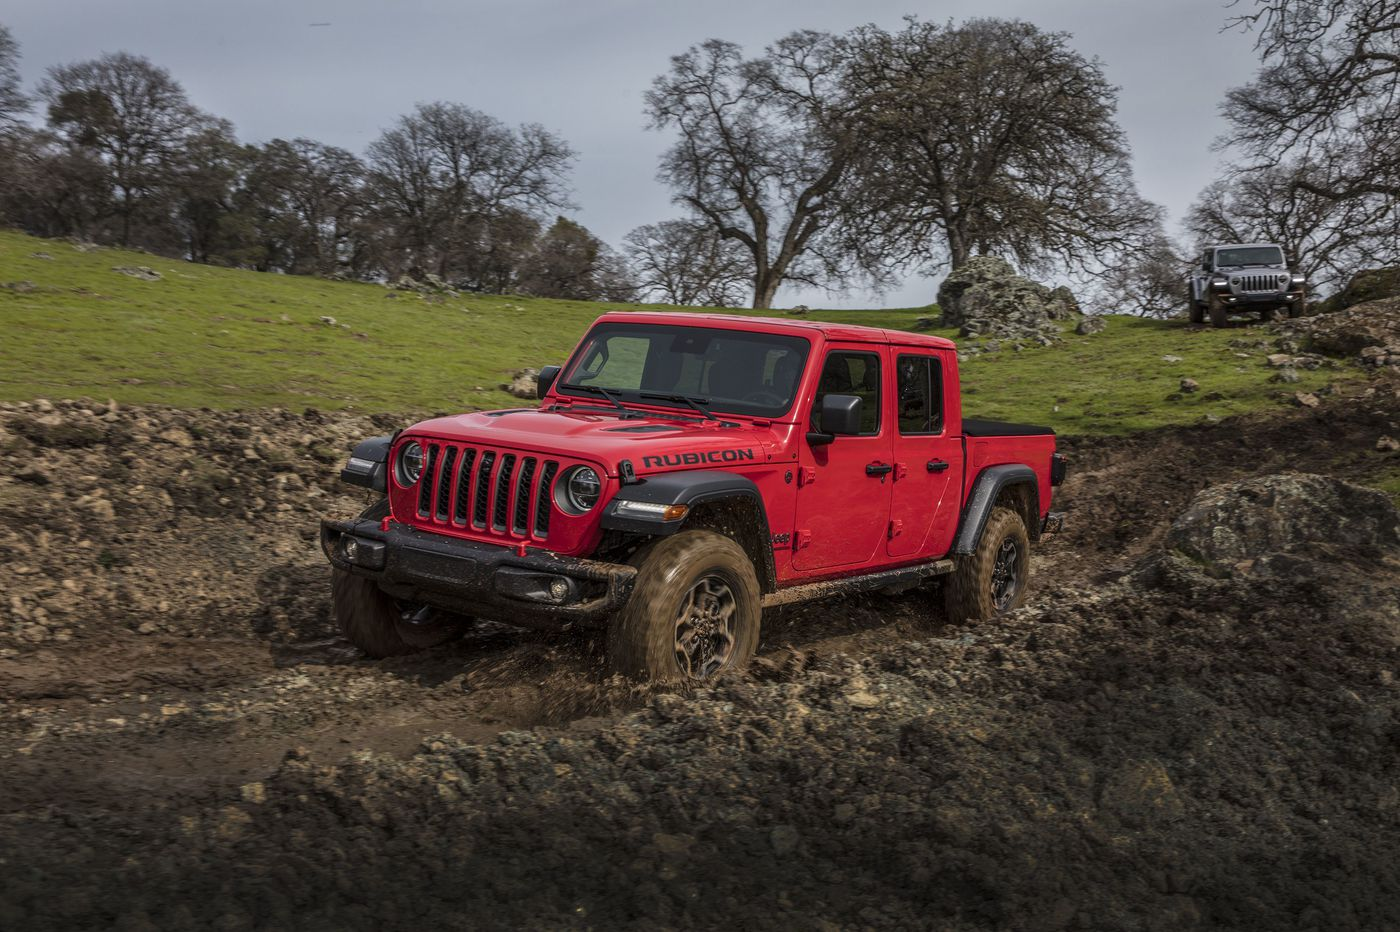 Stretch out summer with the 2020 Jeep Gladiator